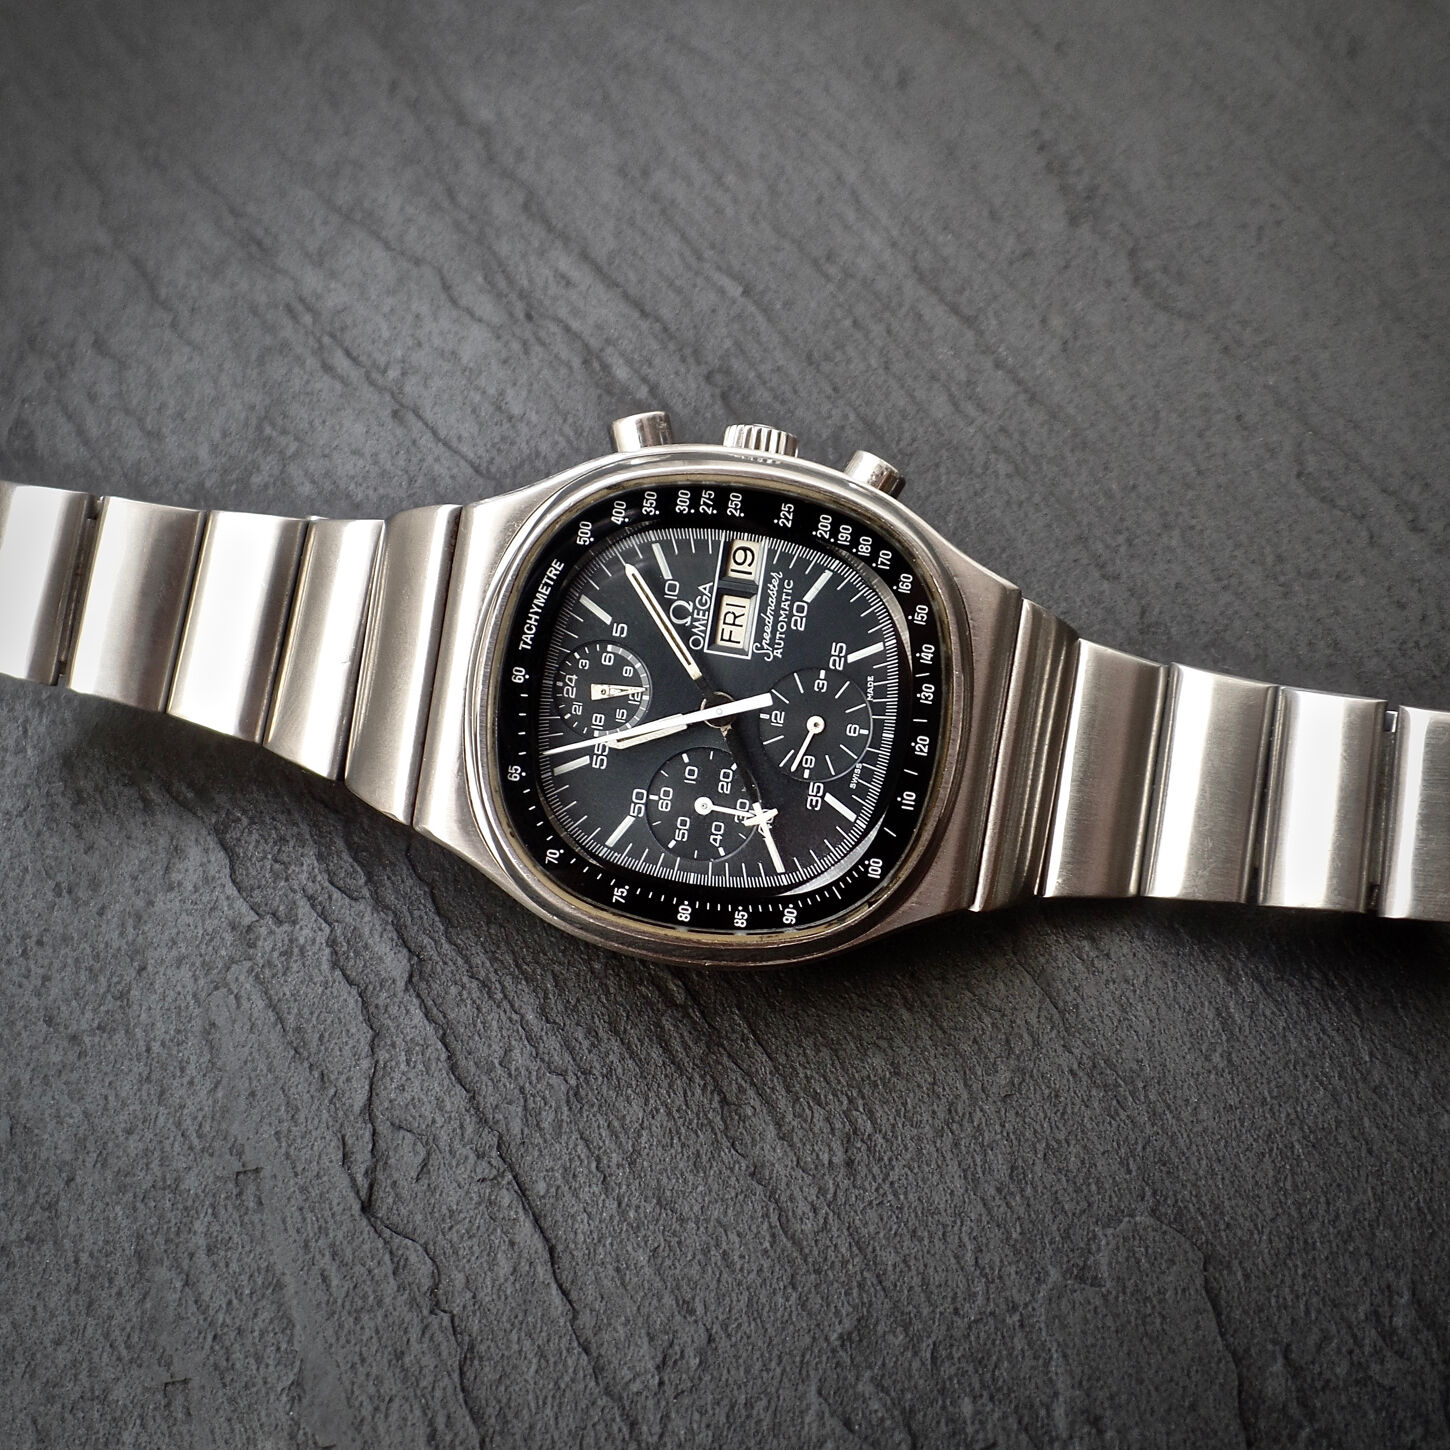 Omega Speedmaster 176.014 TV Case Television Dial 1045 Lemania 1500 1975 Vintage - watch picture 1